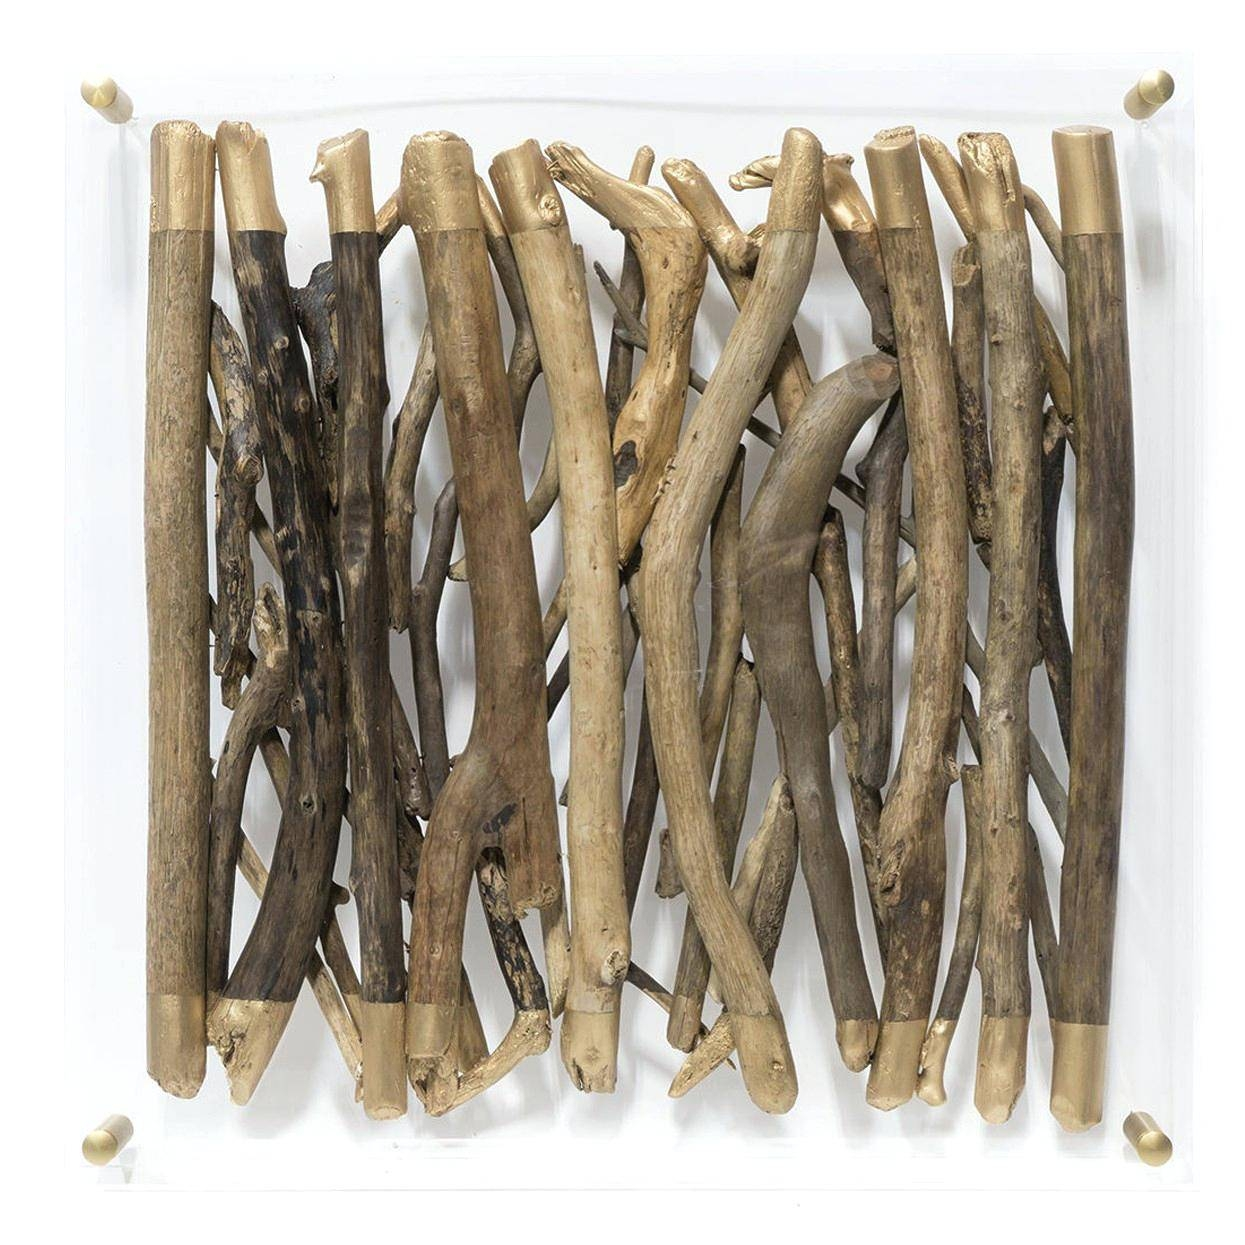 Wall Ideas : Driftwood Peace Sign Wall Decor White Driftwood Wall With Regard To Most Recent Driftwood Wall Art For Sale (View 22 of 30)